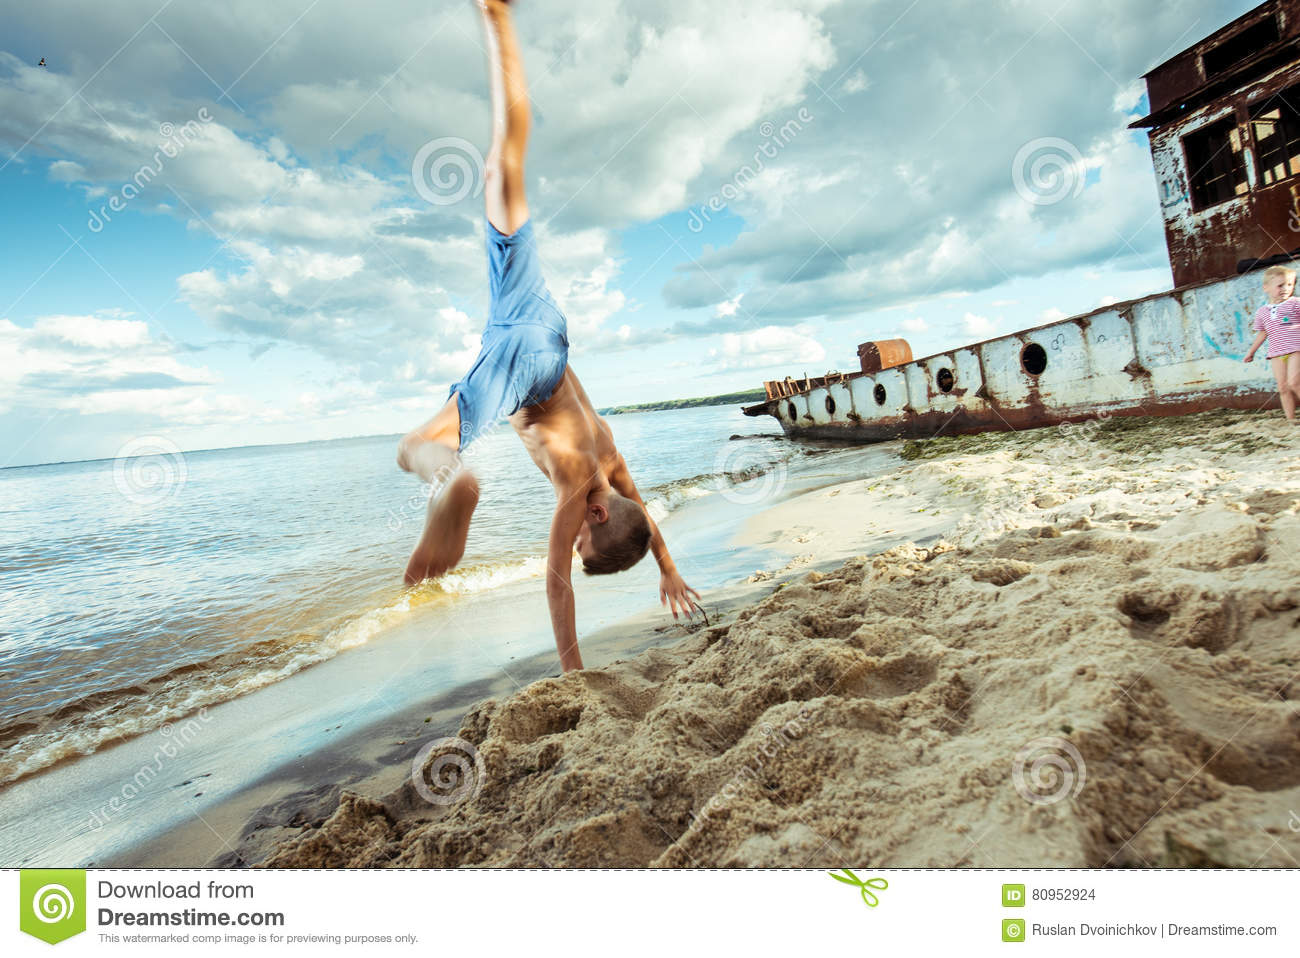 bc55f591a Boy Shorts Is Happy Jumps And Flips On The Beach Stock Photo - Image ...